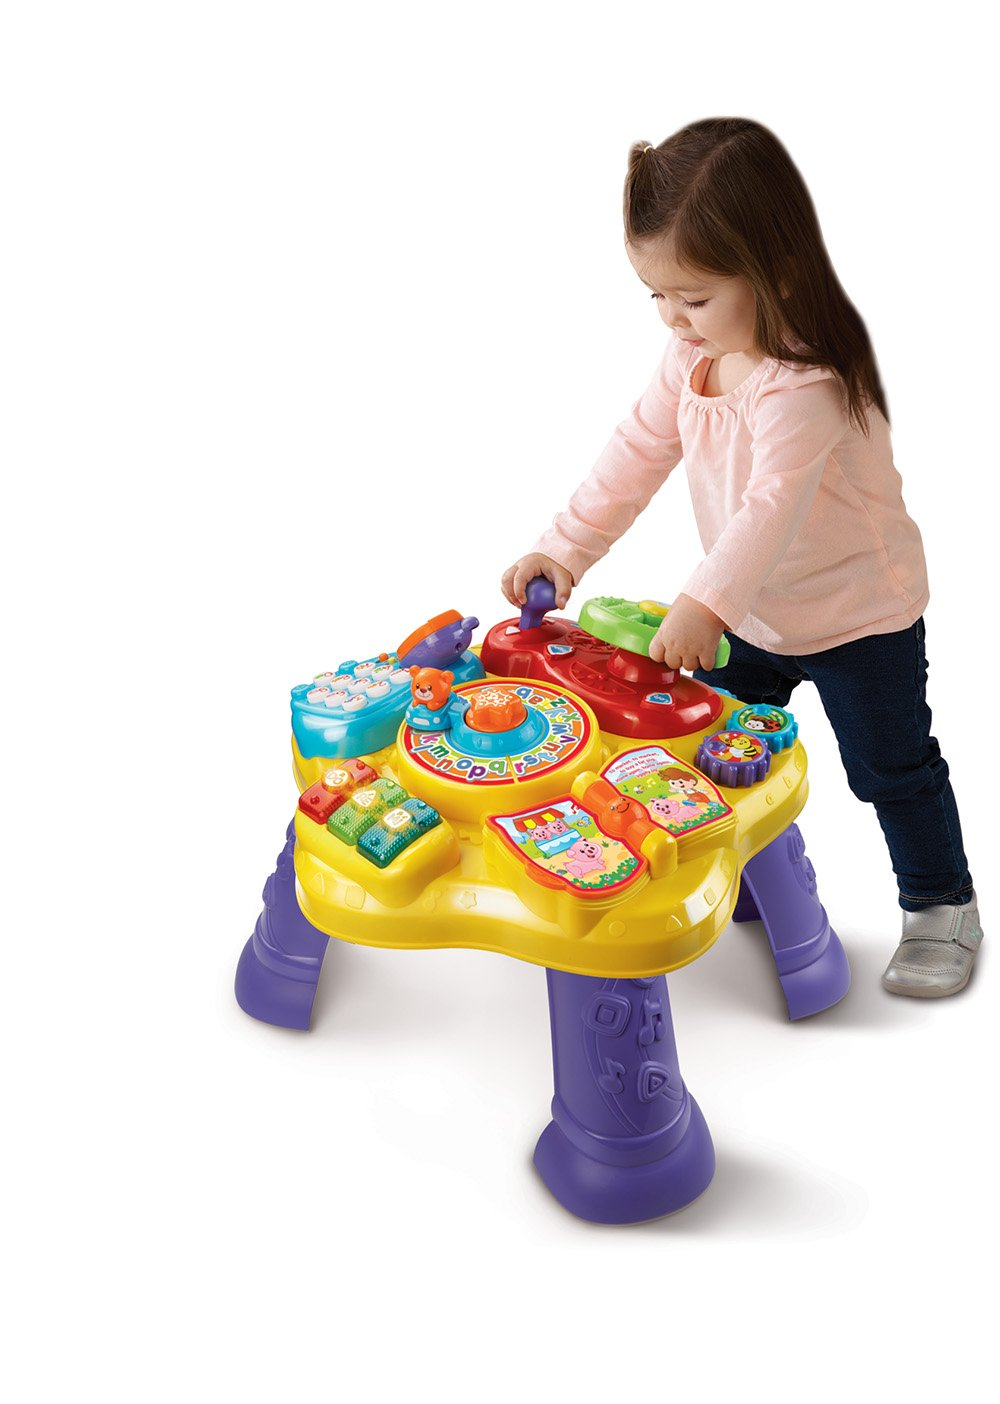 VTech Magic Star Learning Table (Frustration Free Packaging) by VTech (Image #4)